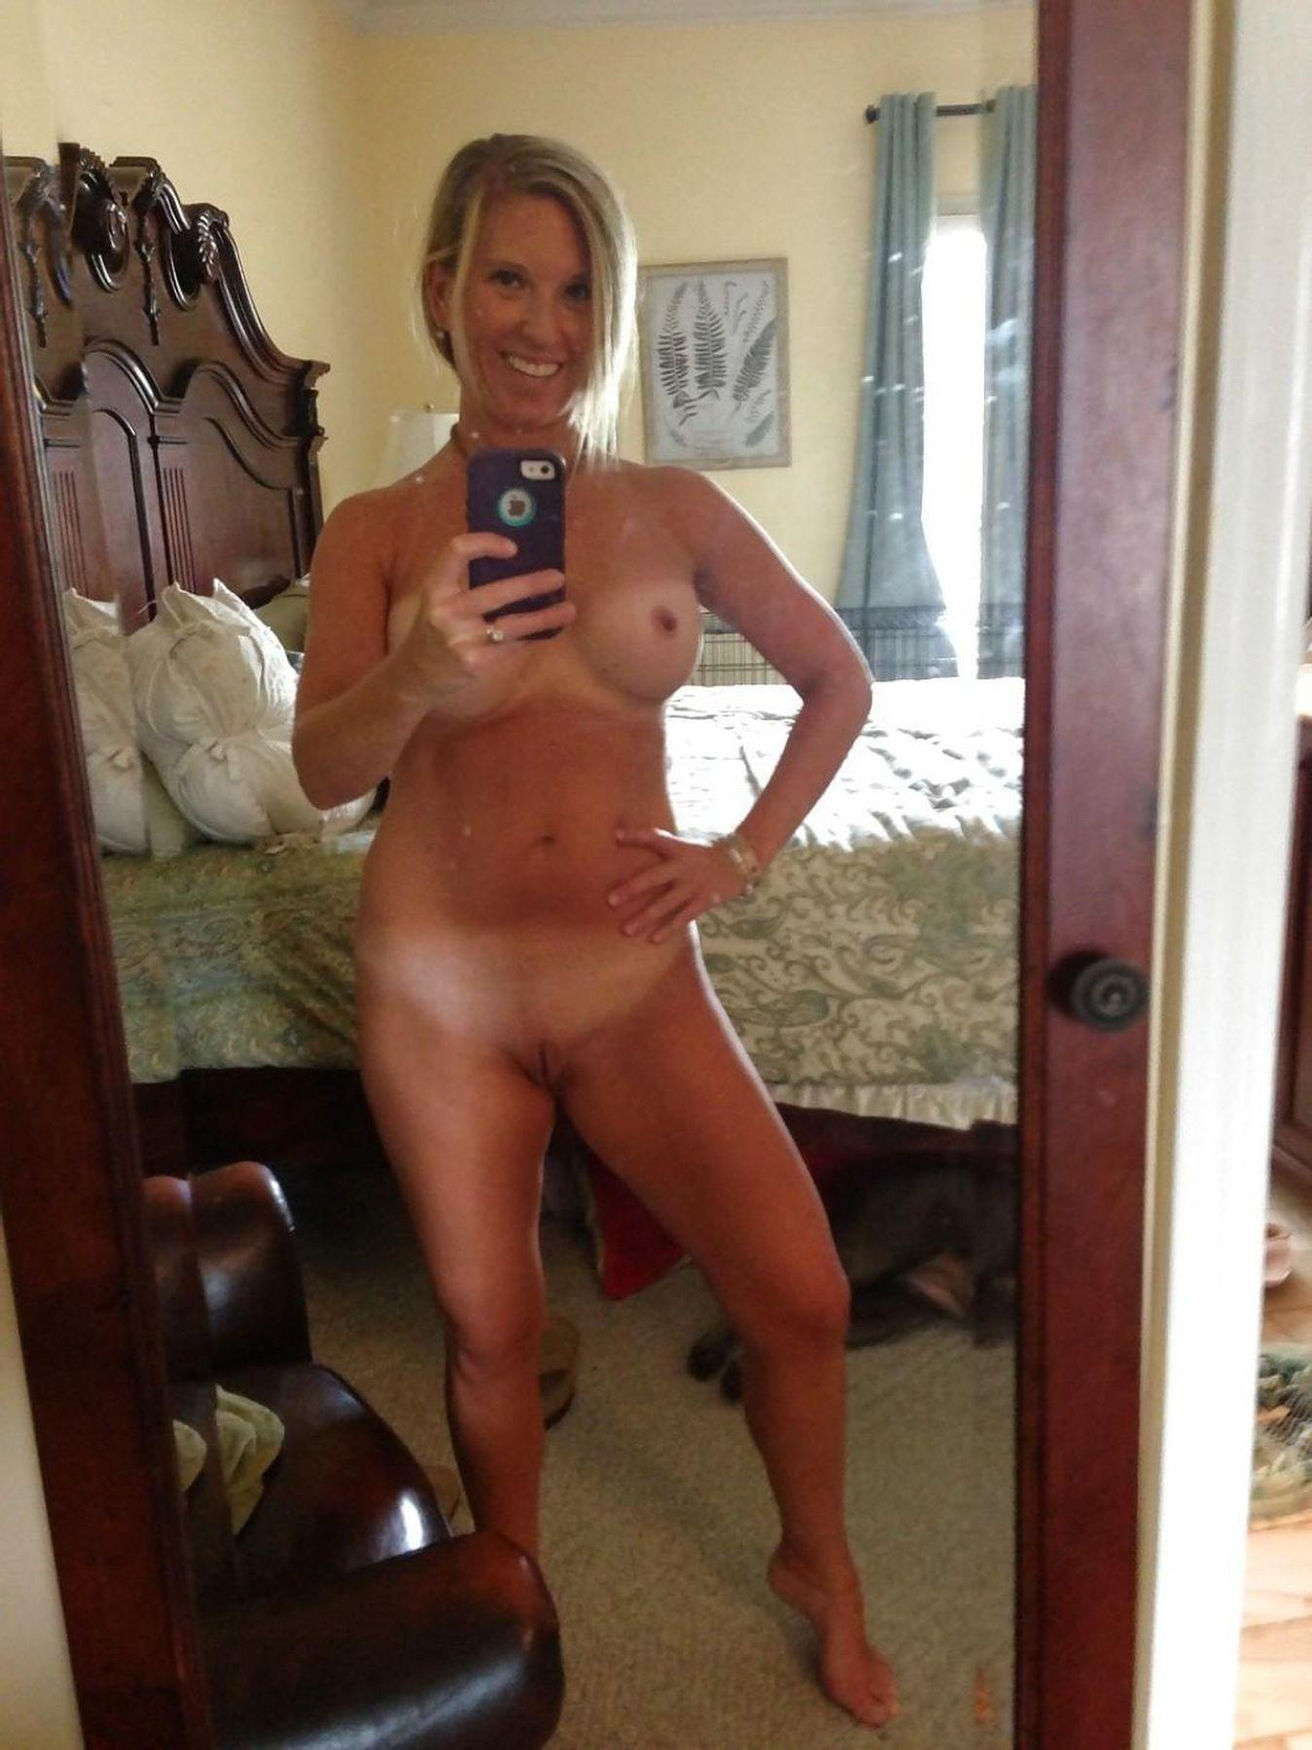 Middle aged dame shows off her shaved pussy after doffing bra and undies